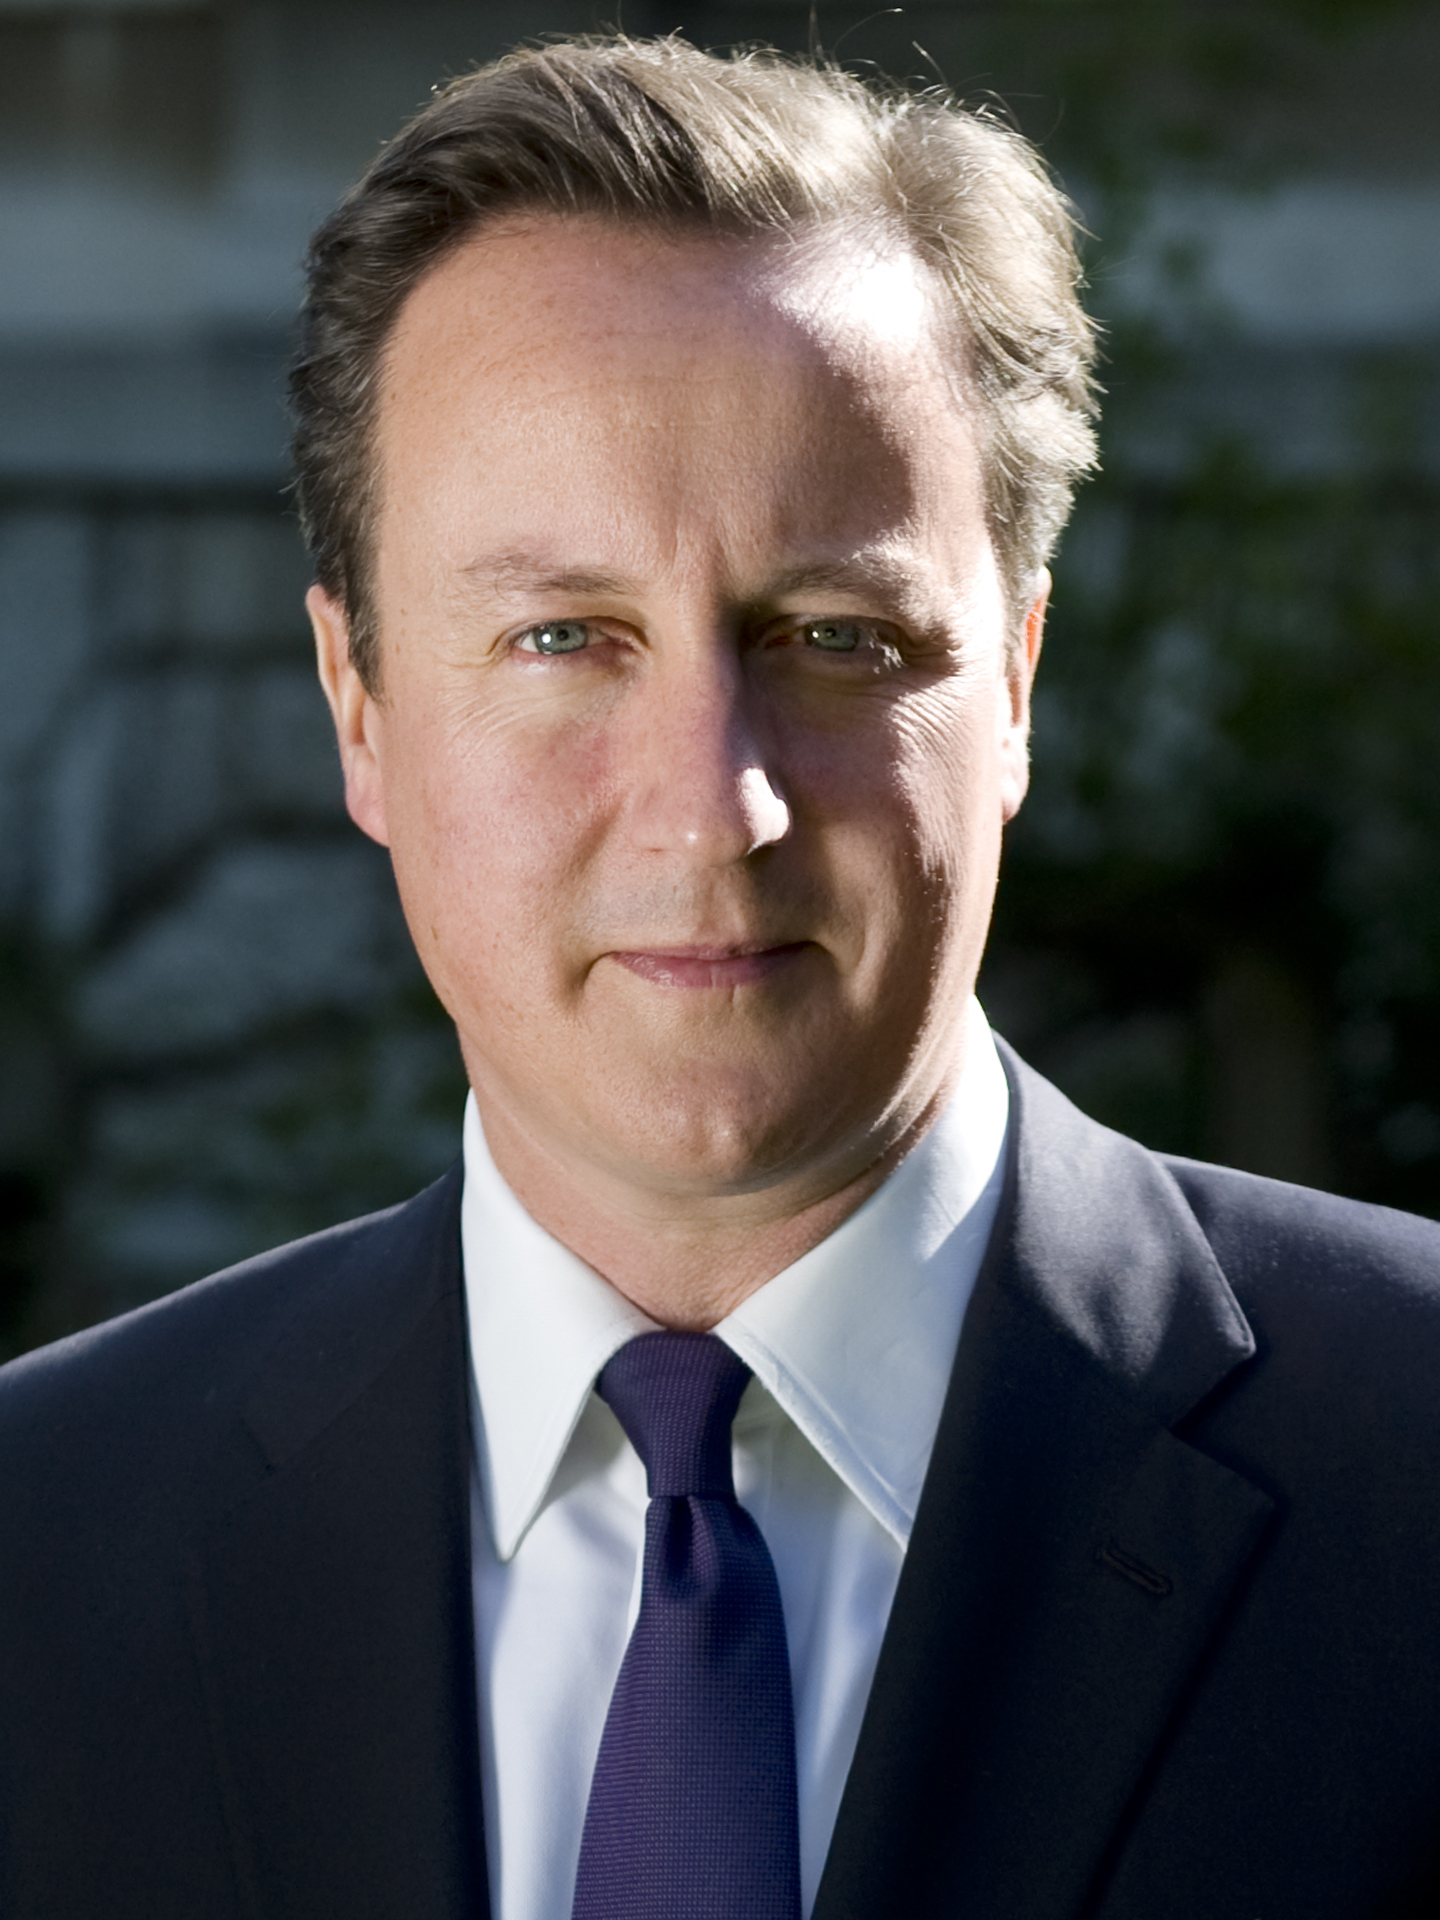 a6207aef4 David Cameron - Wikipedia